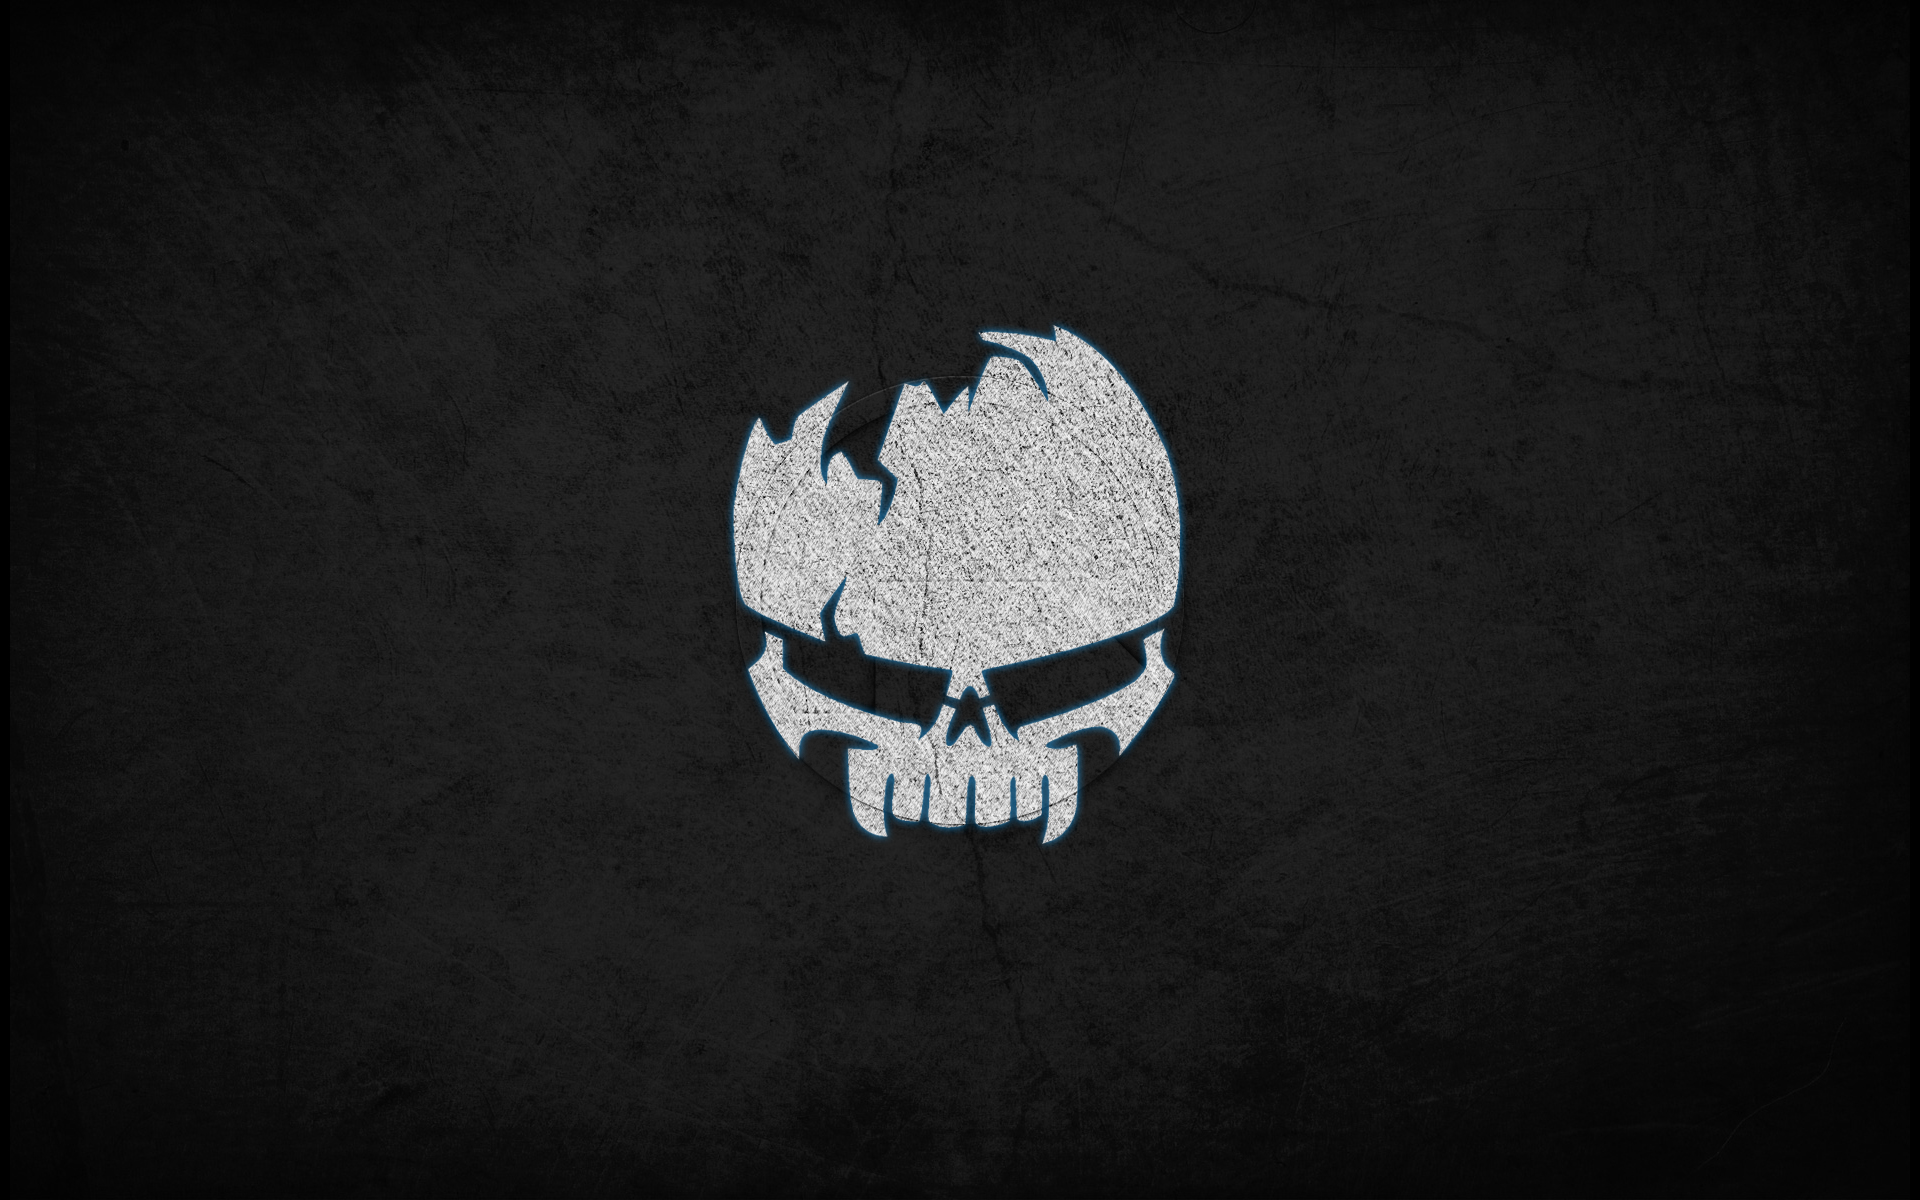 Angry Skull Wallpaper HD